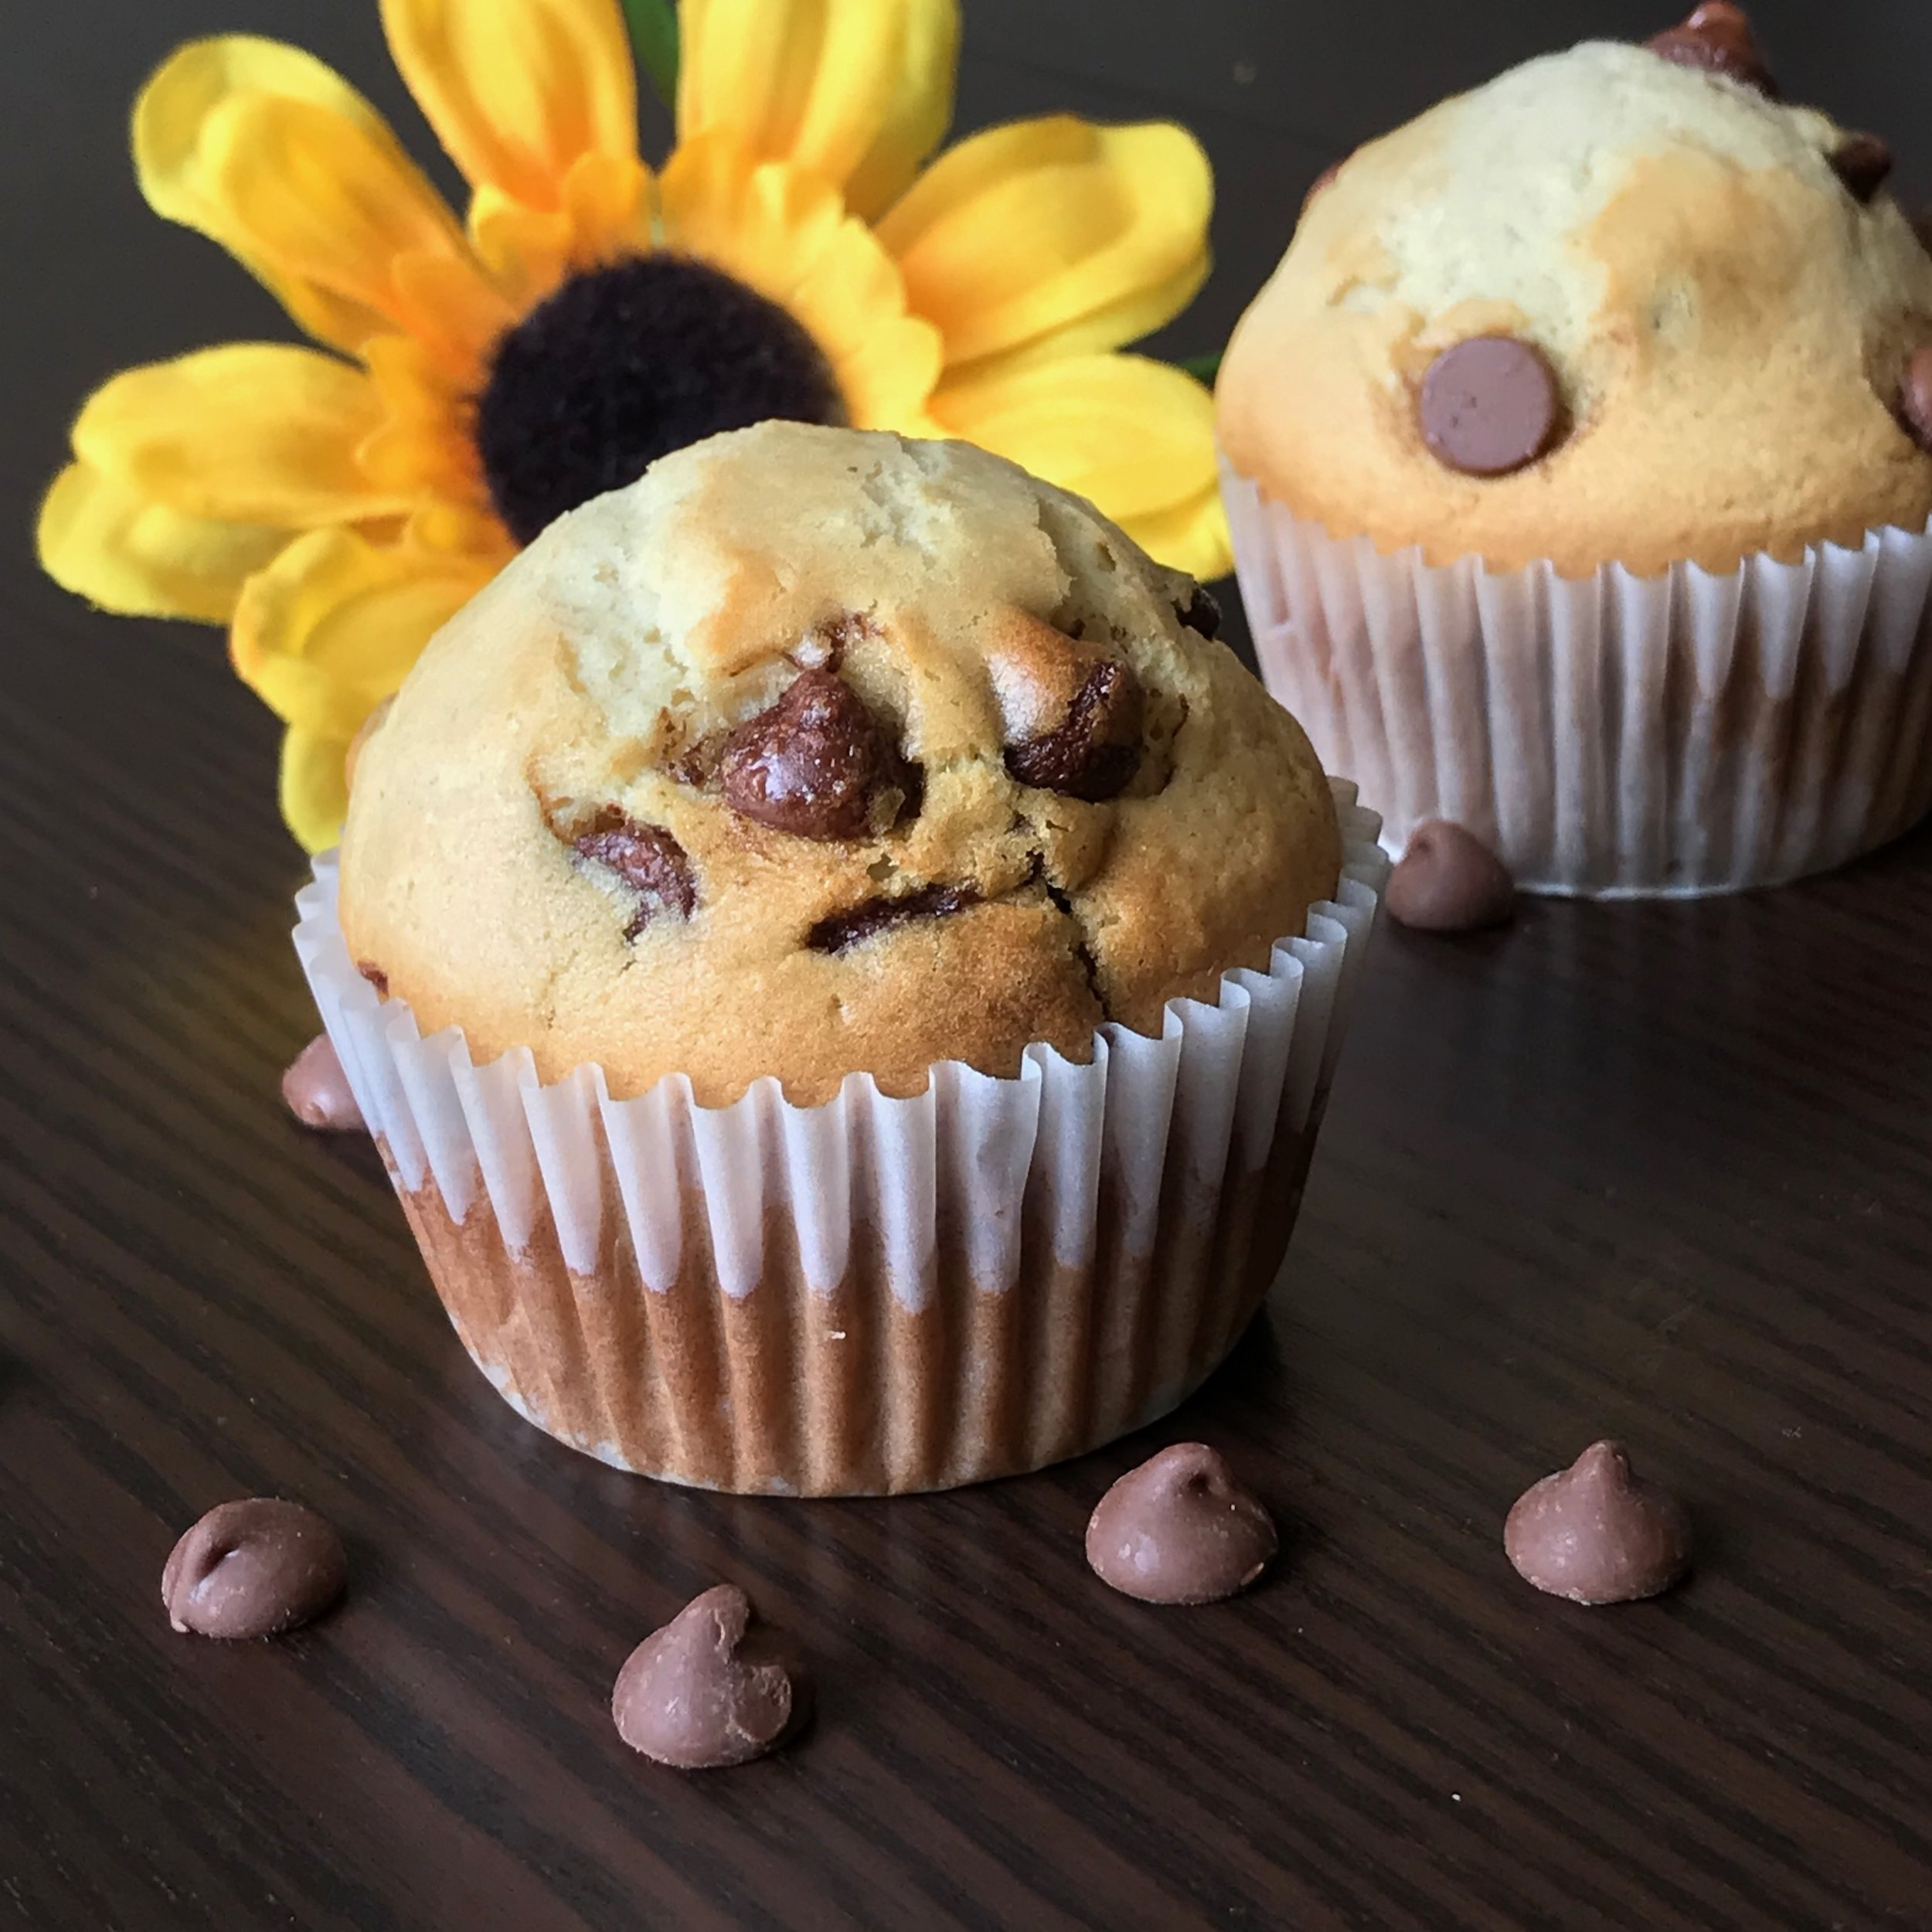 DJ's Super Delicious Chocolate Chip Muffins